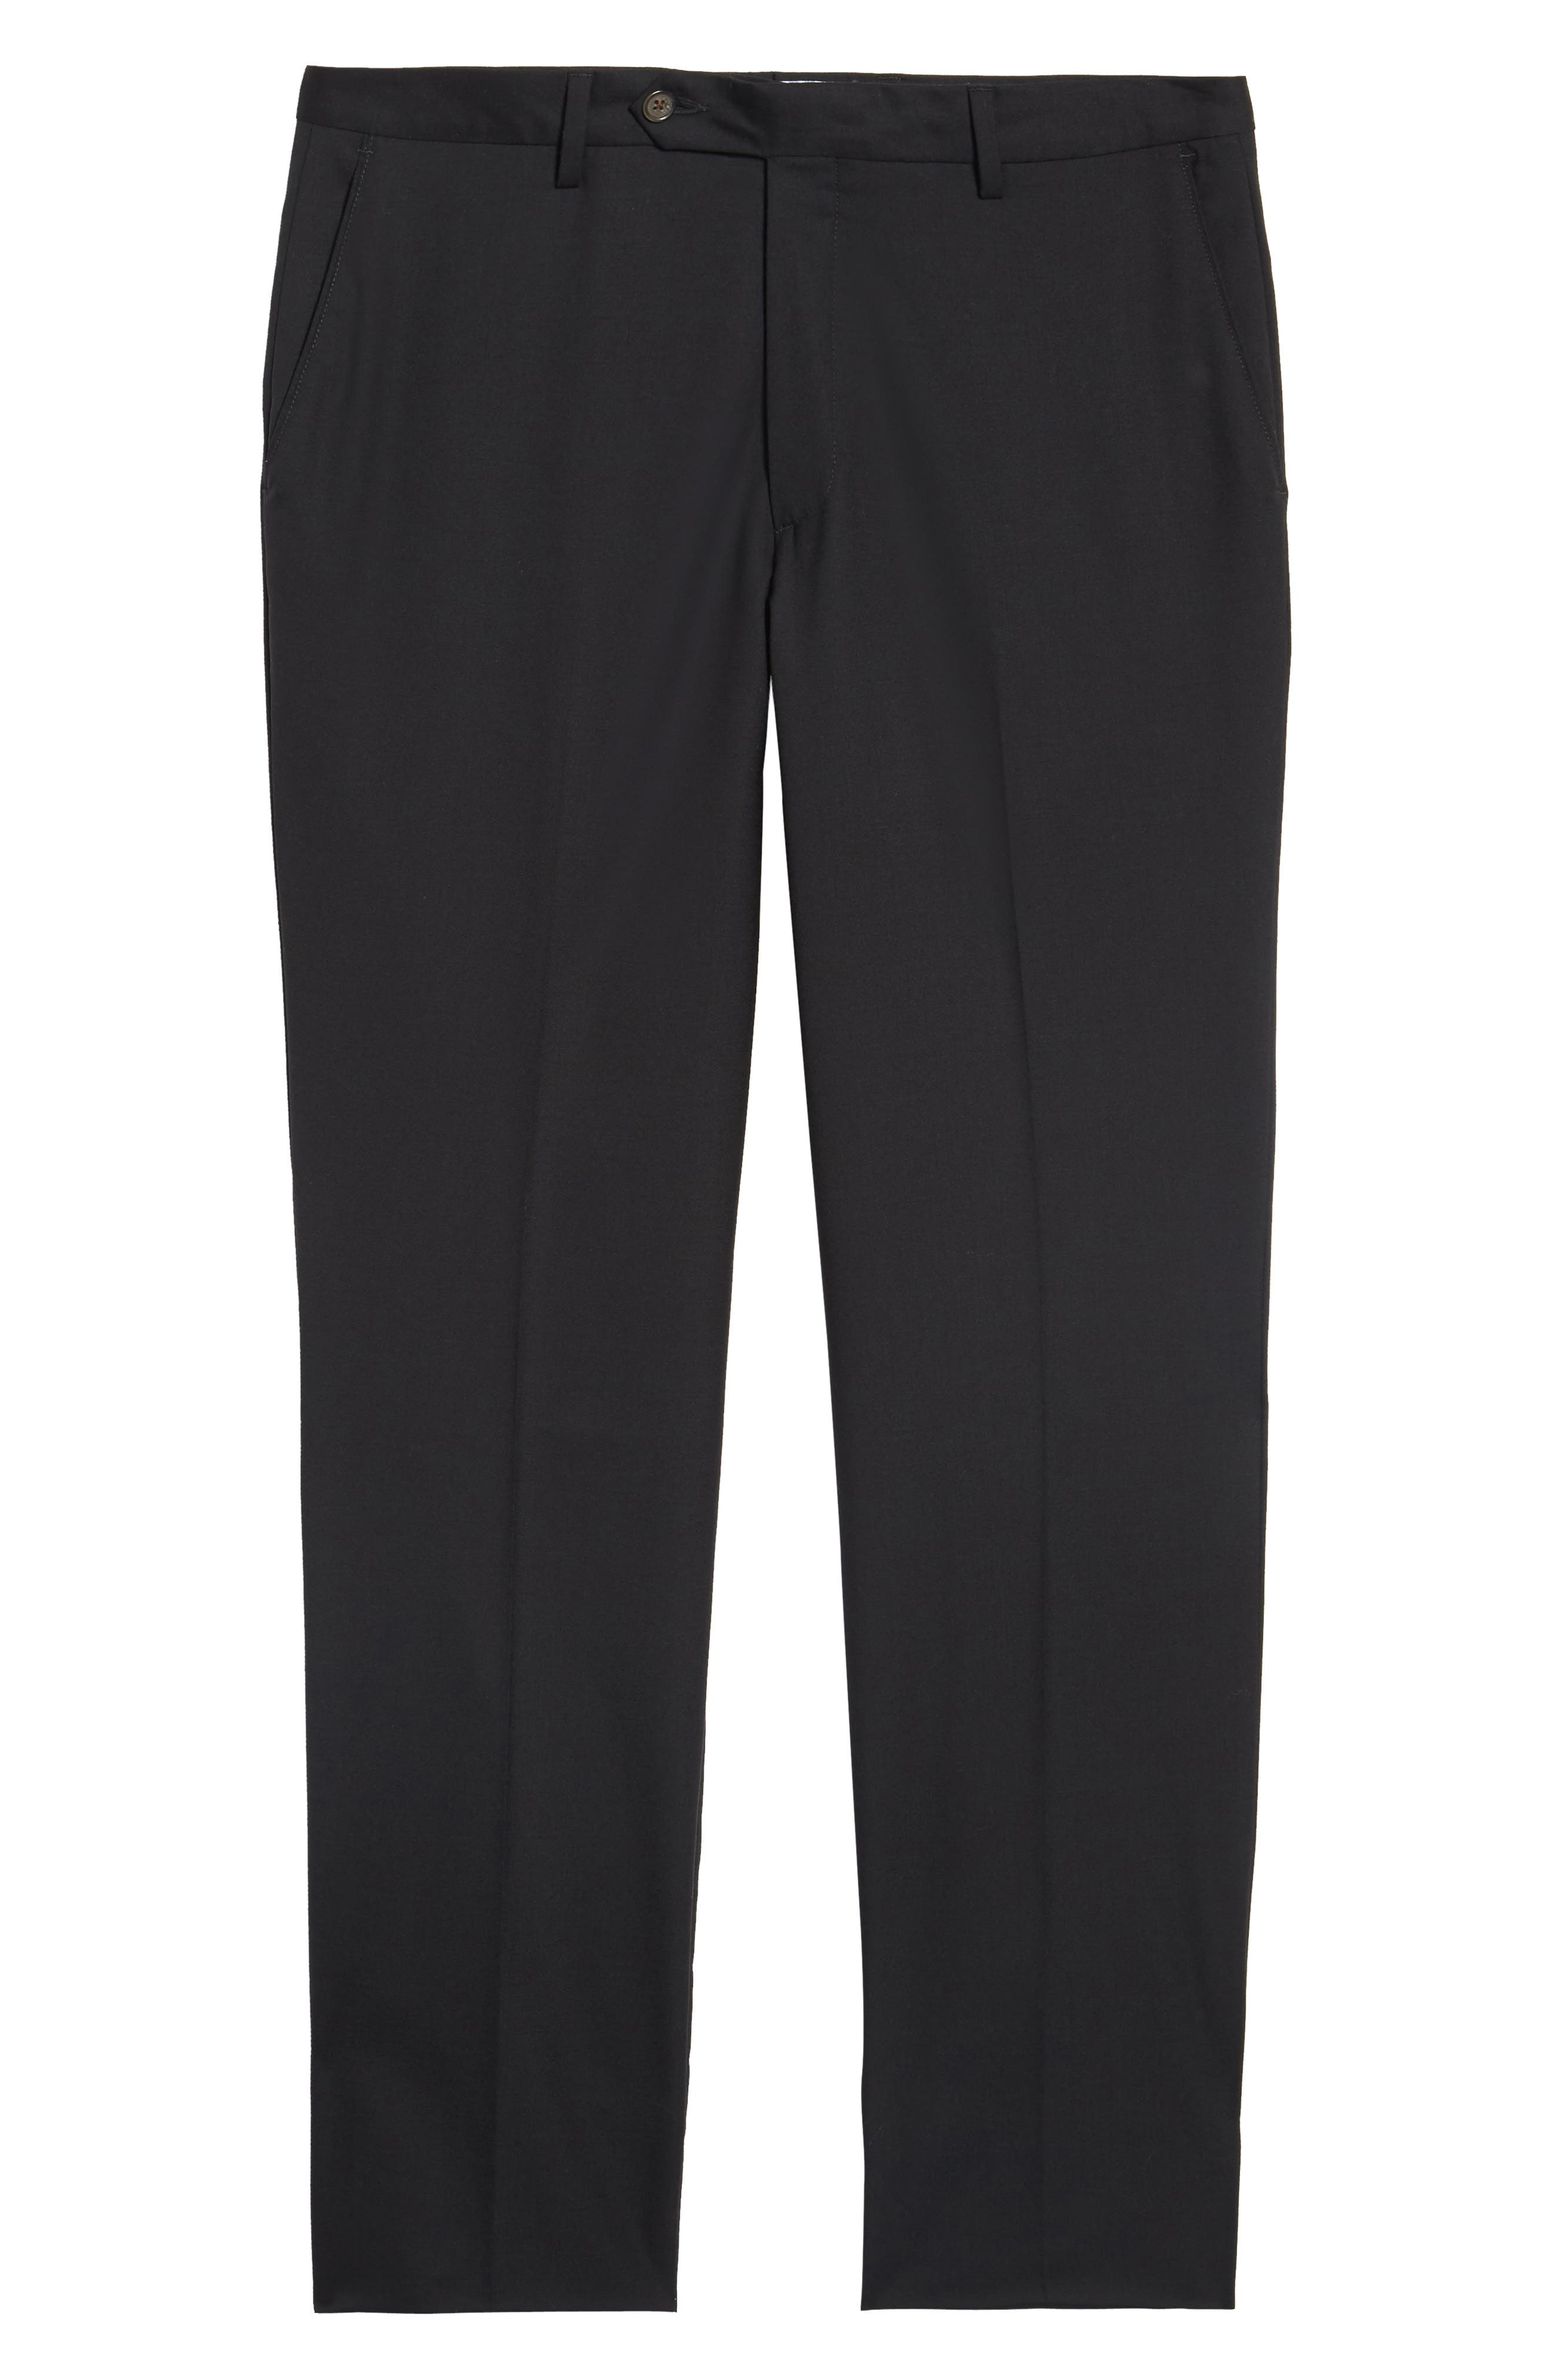 BERLE,                             Flat Front Stretch Solid Wool Trousers,                             Alternate thumbnail 6, color,                             001